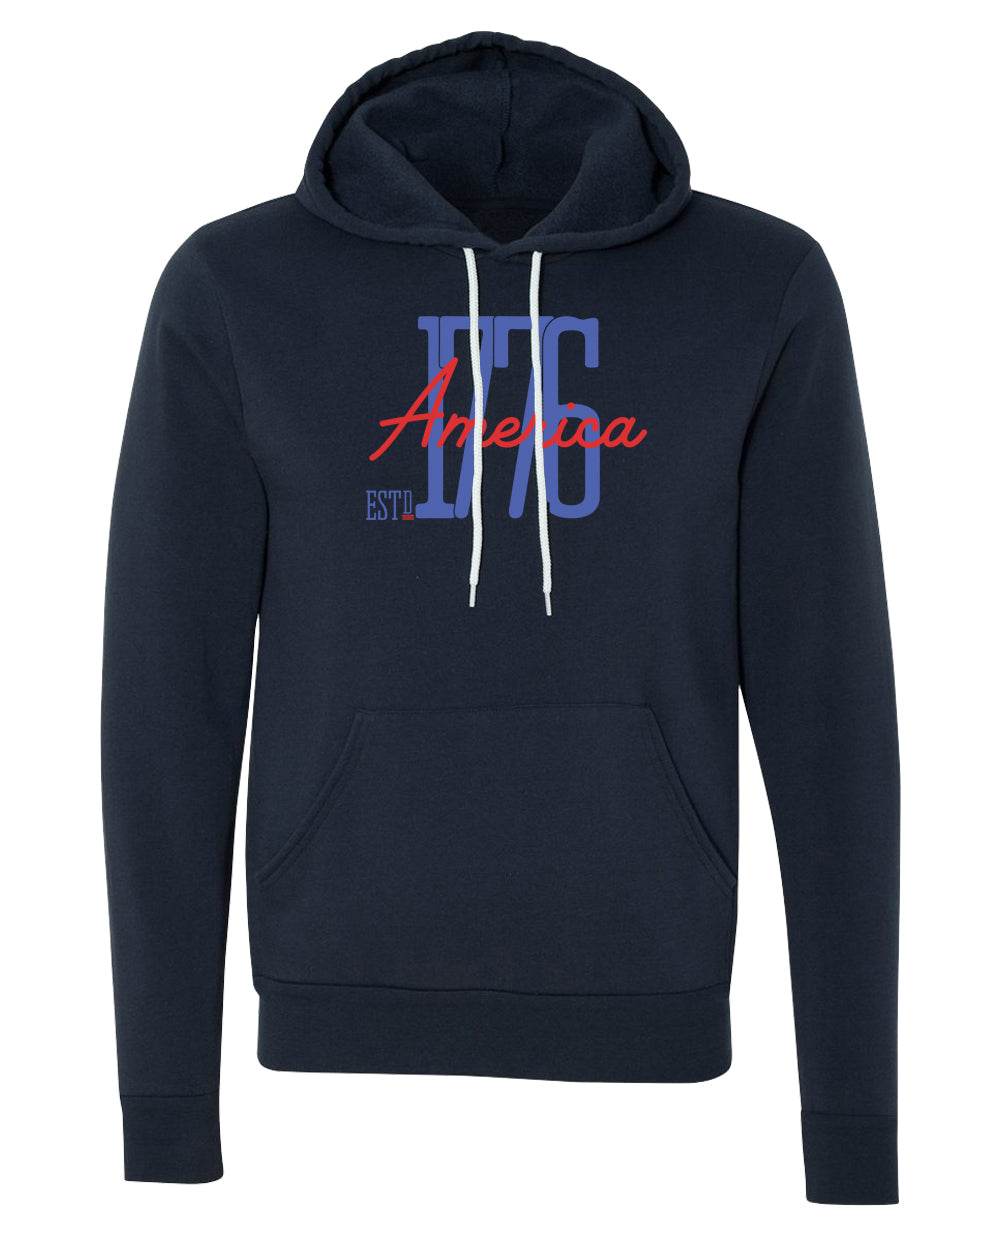 Sweater - America Est 1776 Patriotic Sweatshirts, 4th Of July Hoodies, USA Sweatshirts